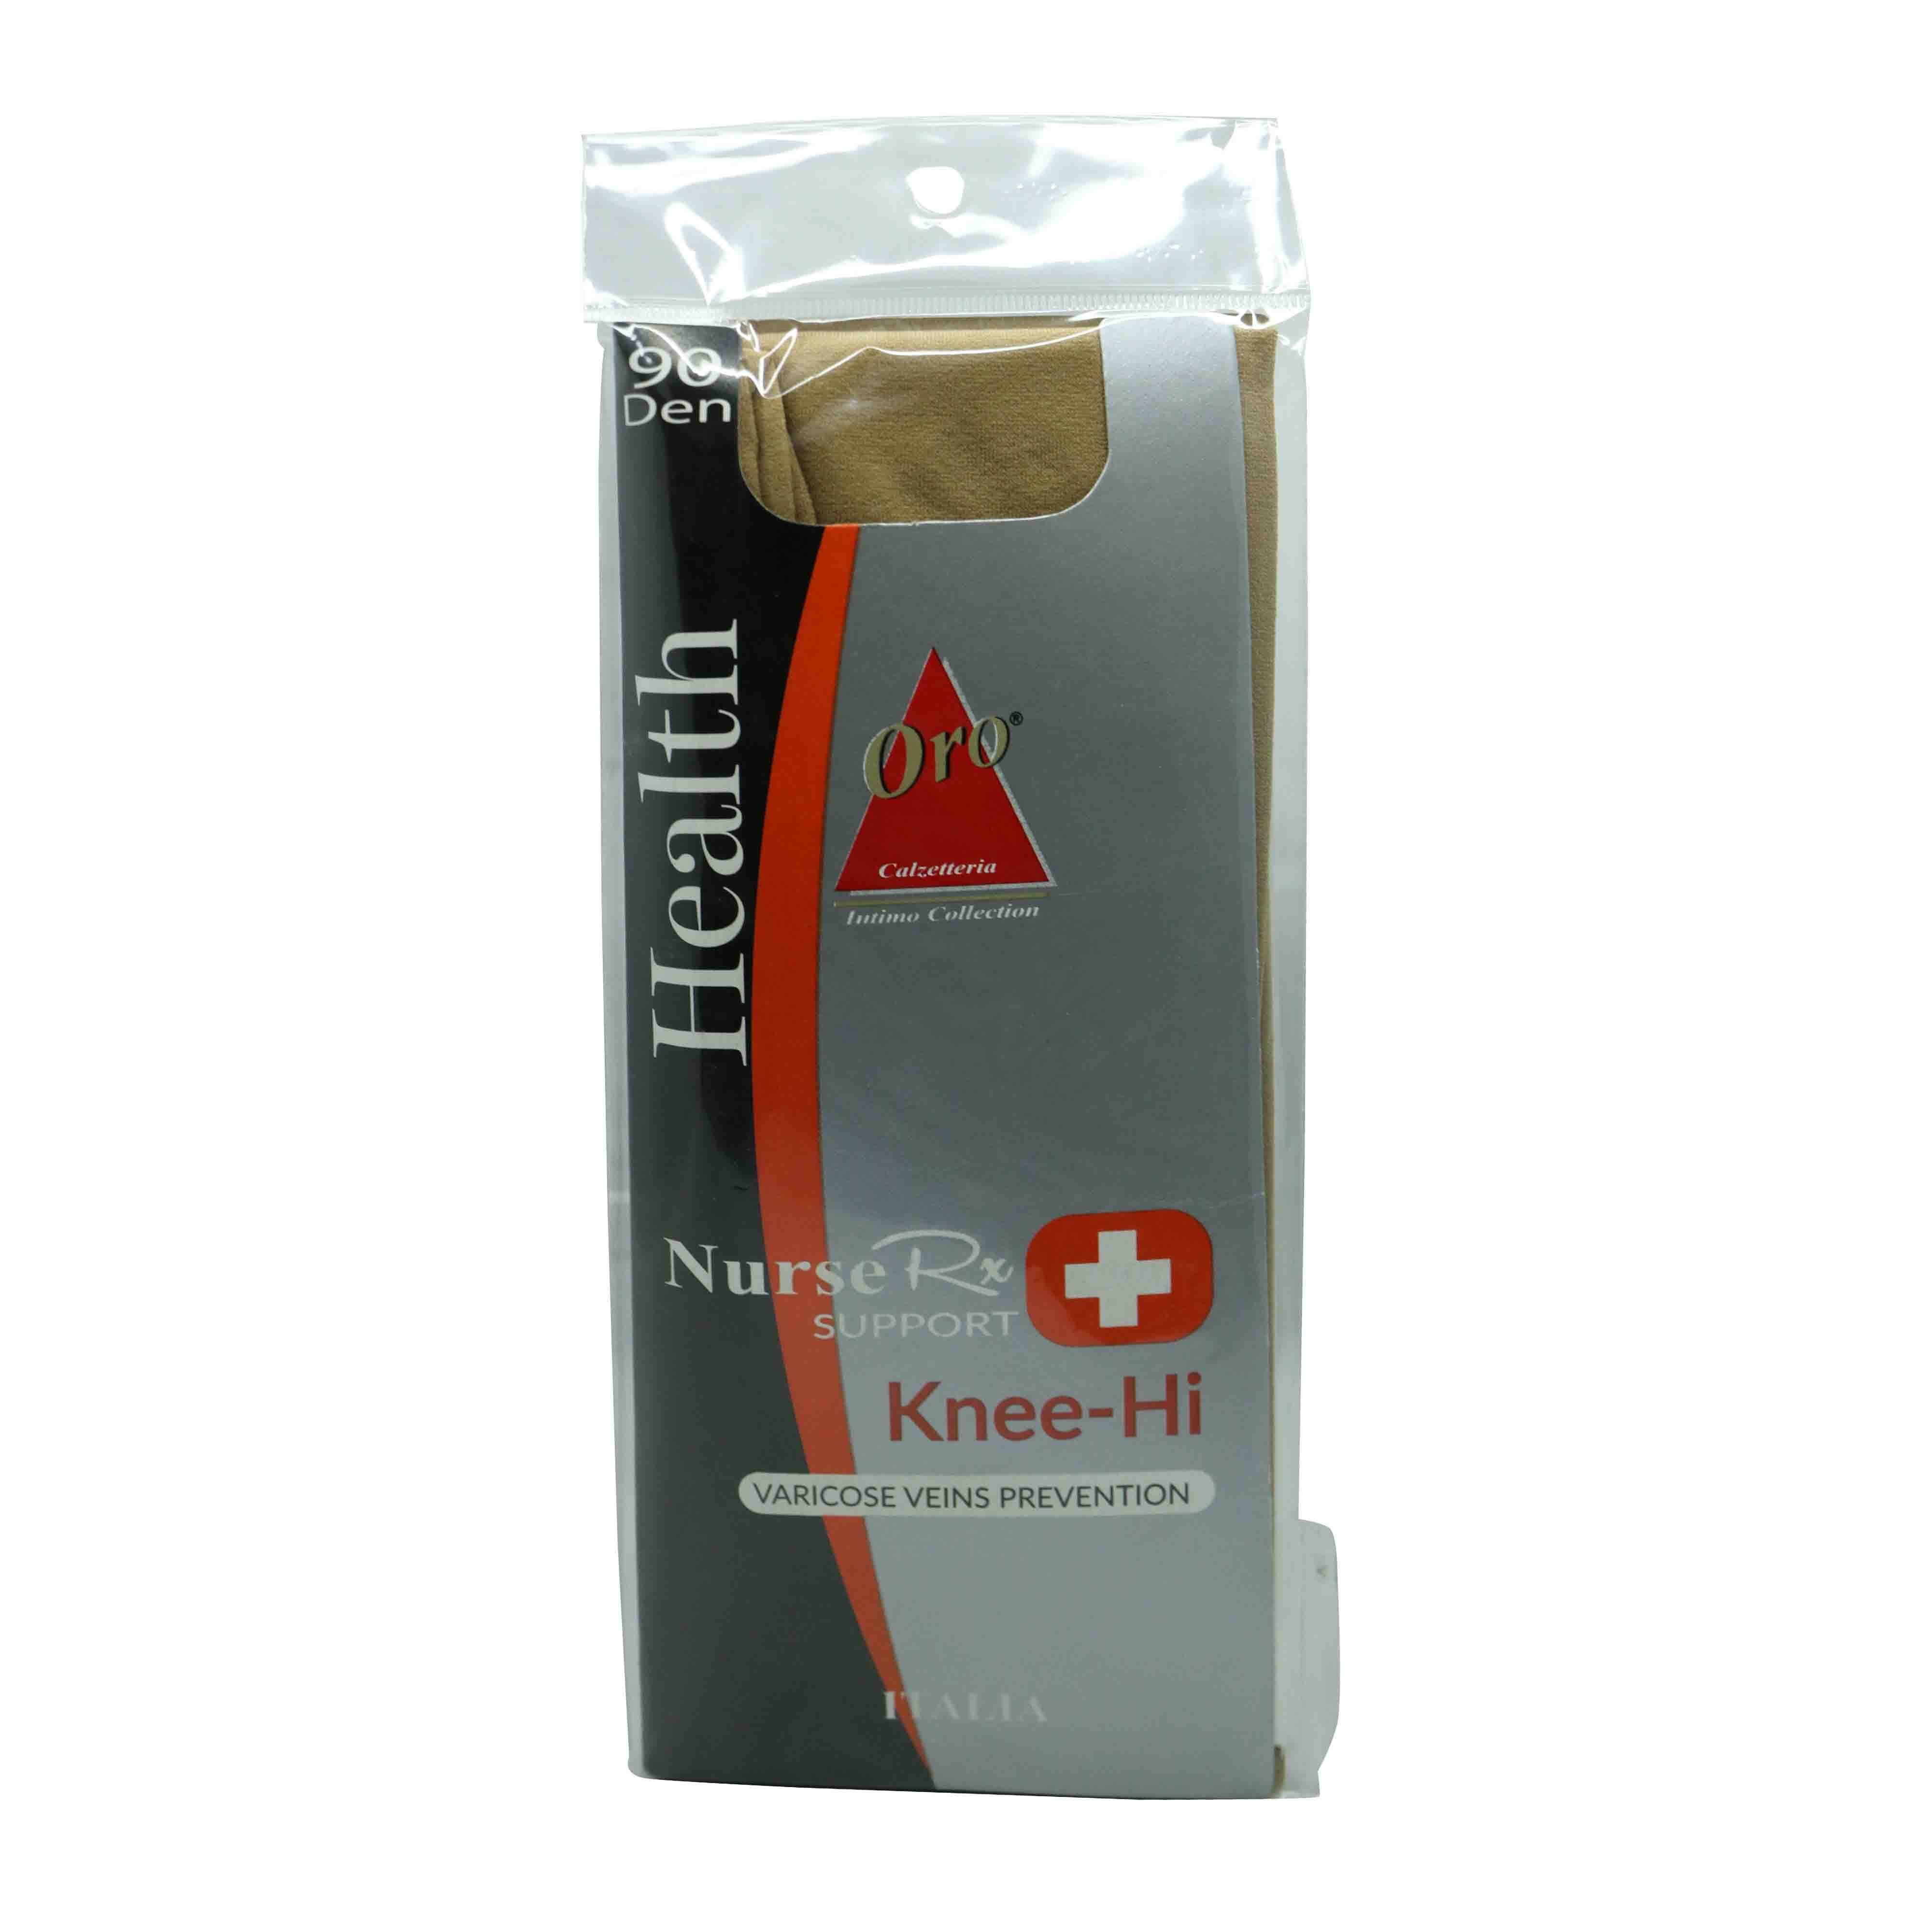 Nurse Rx Support Knee-hi Stockings Naturalle